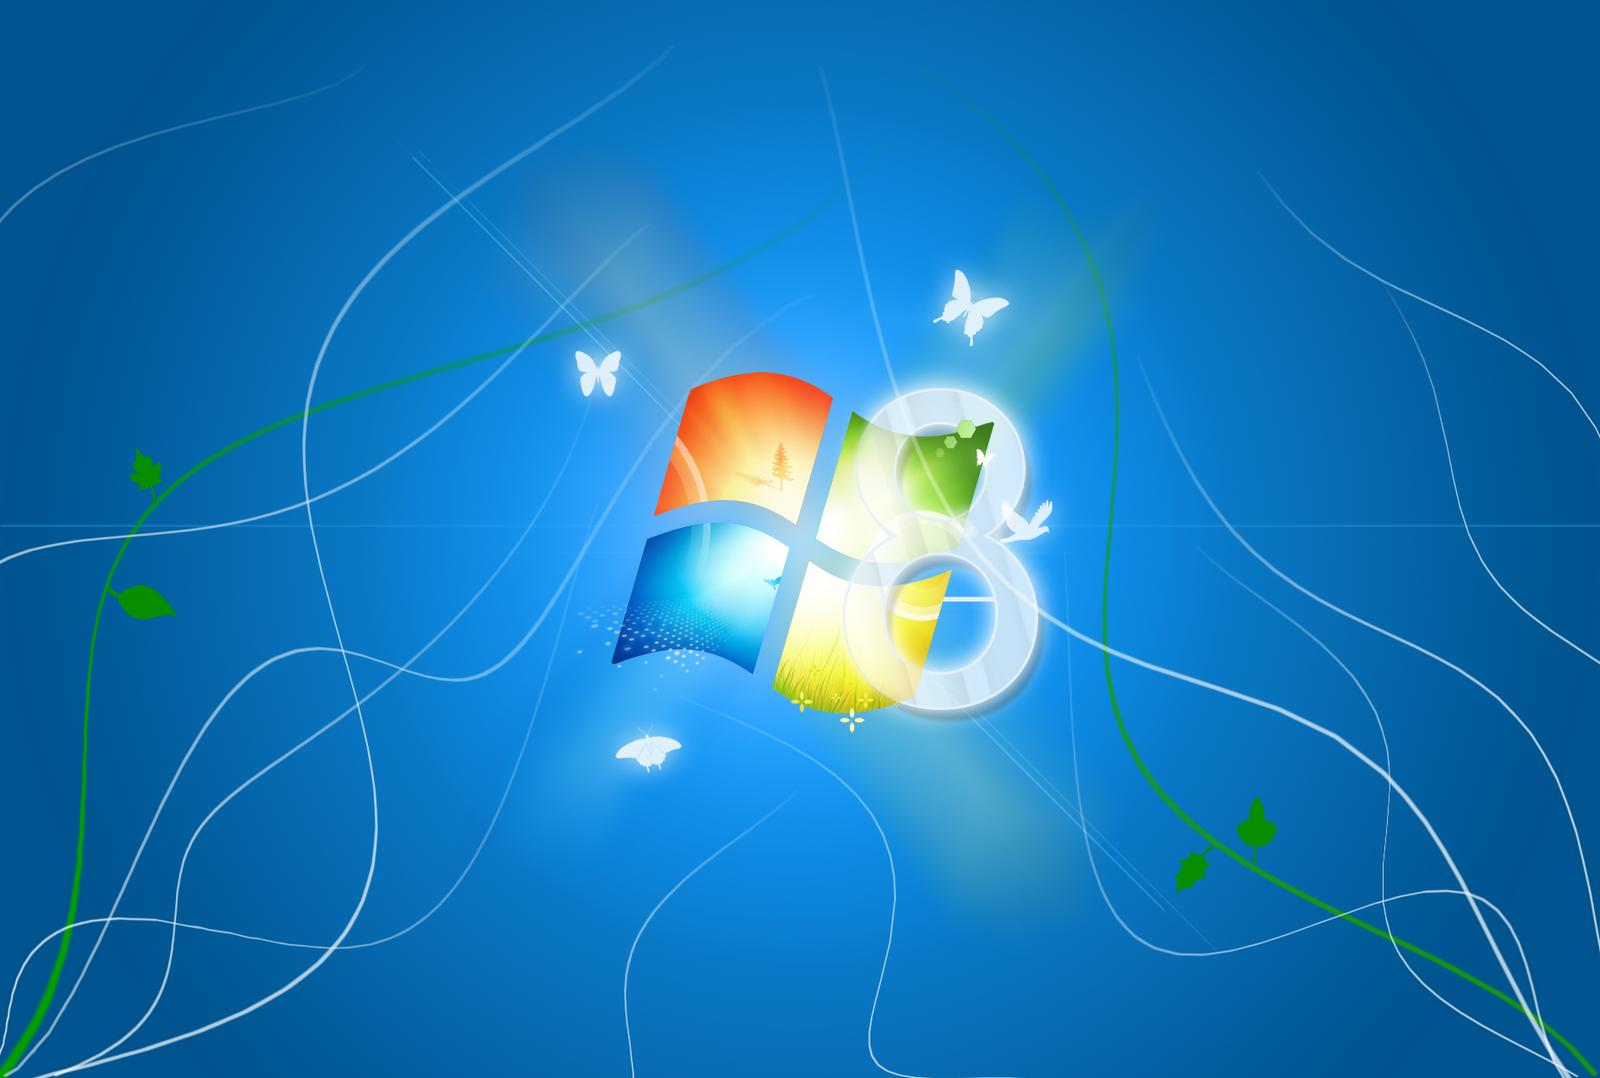 Mobile Windows 8 Pictures High Resolution